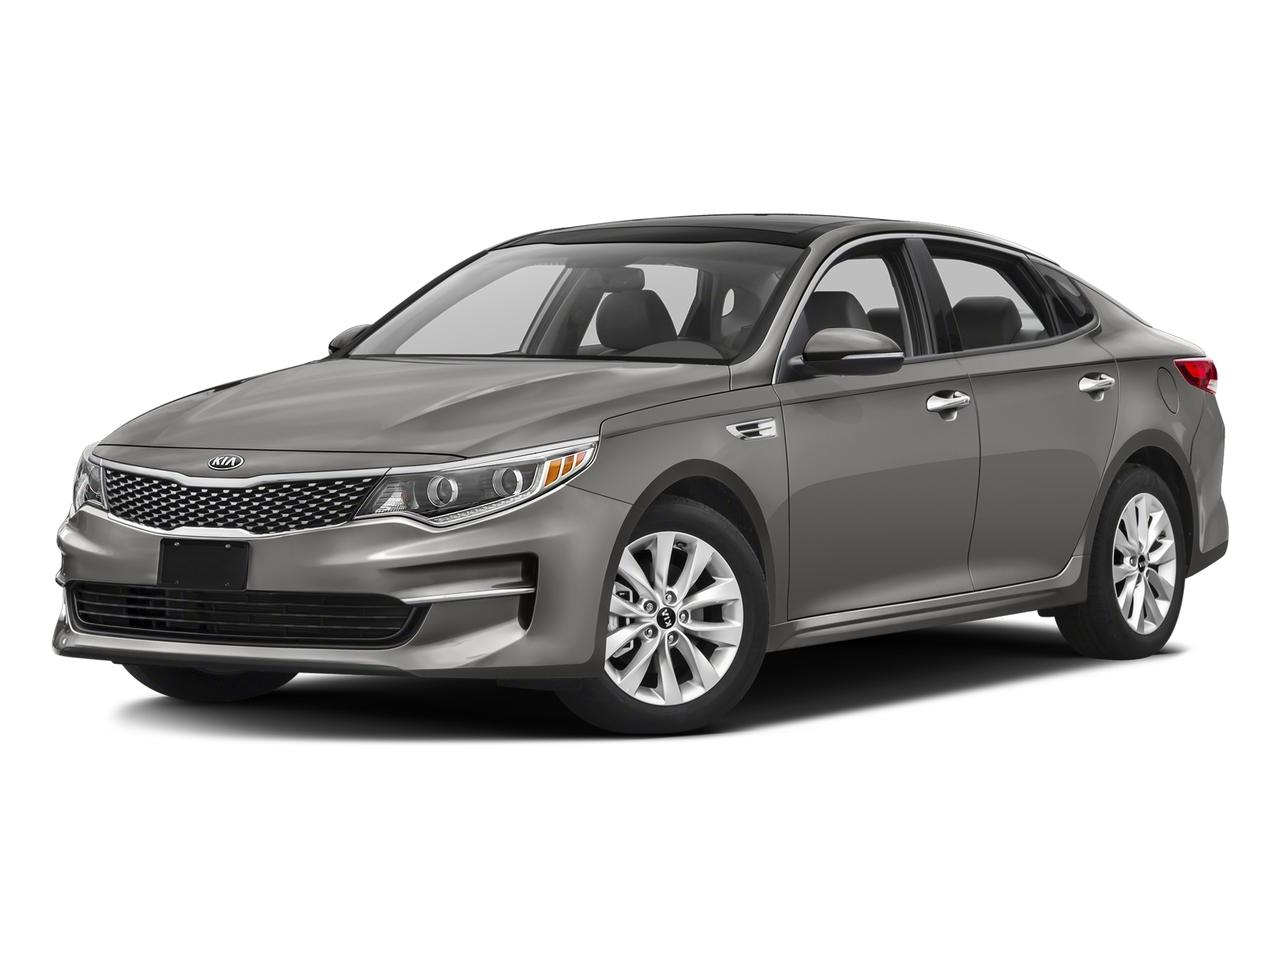 2016 Kia Optima Vehicle Photo in Cartersville, GA 30120